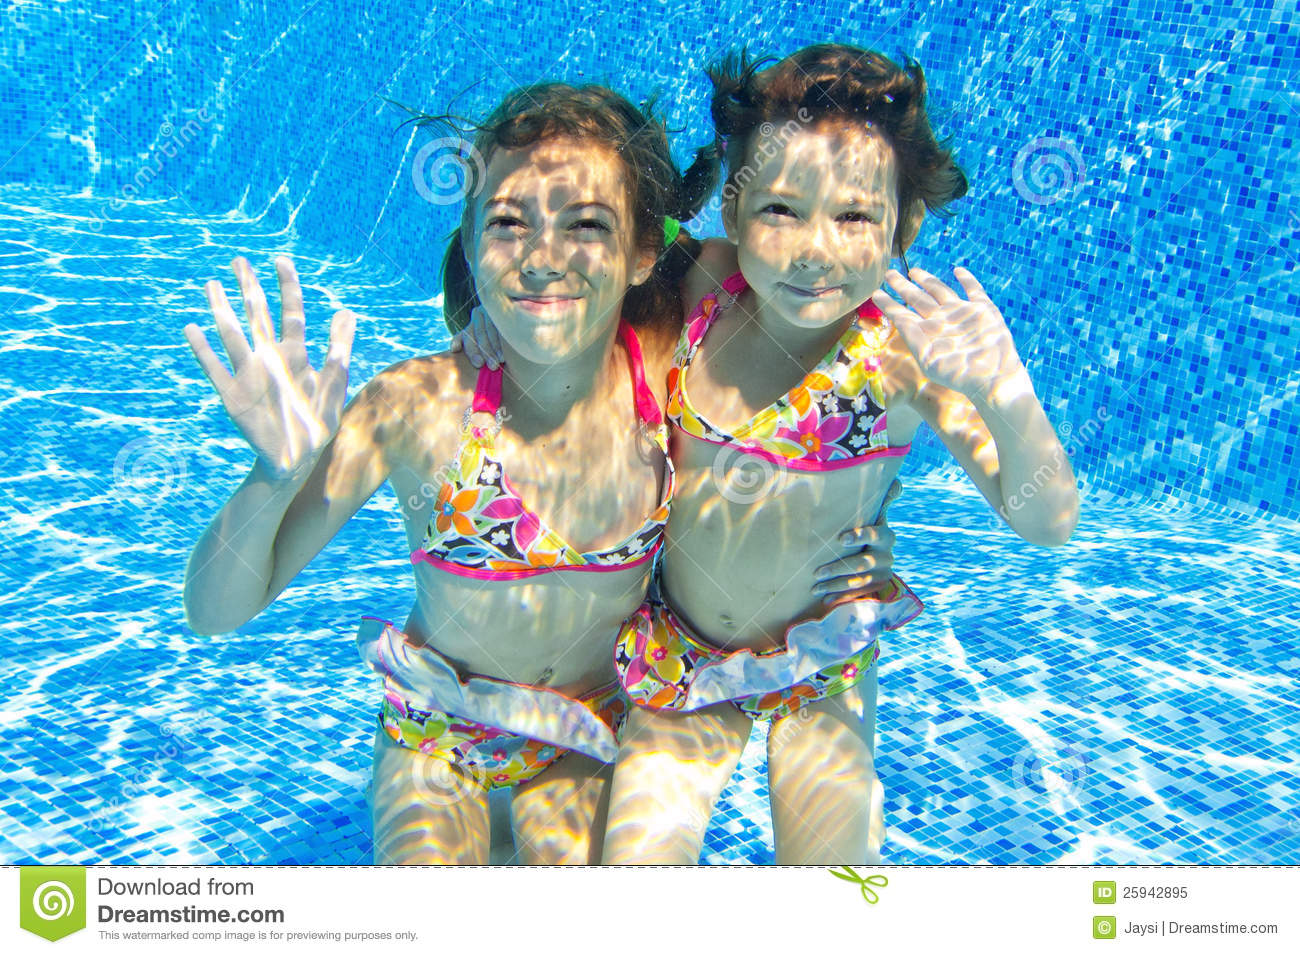 Kids Swimming happy smiling underwater kid swimming pool stock photos, images